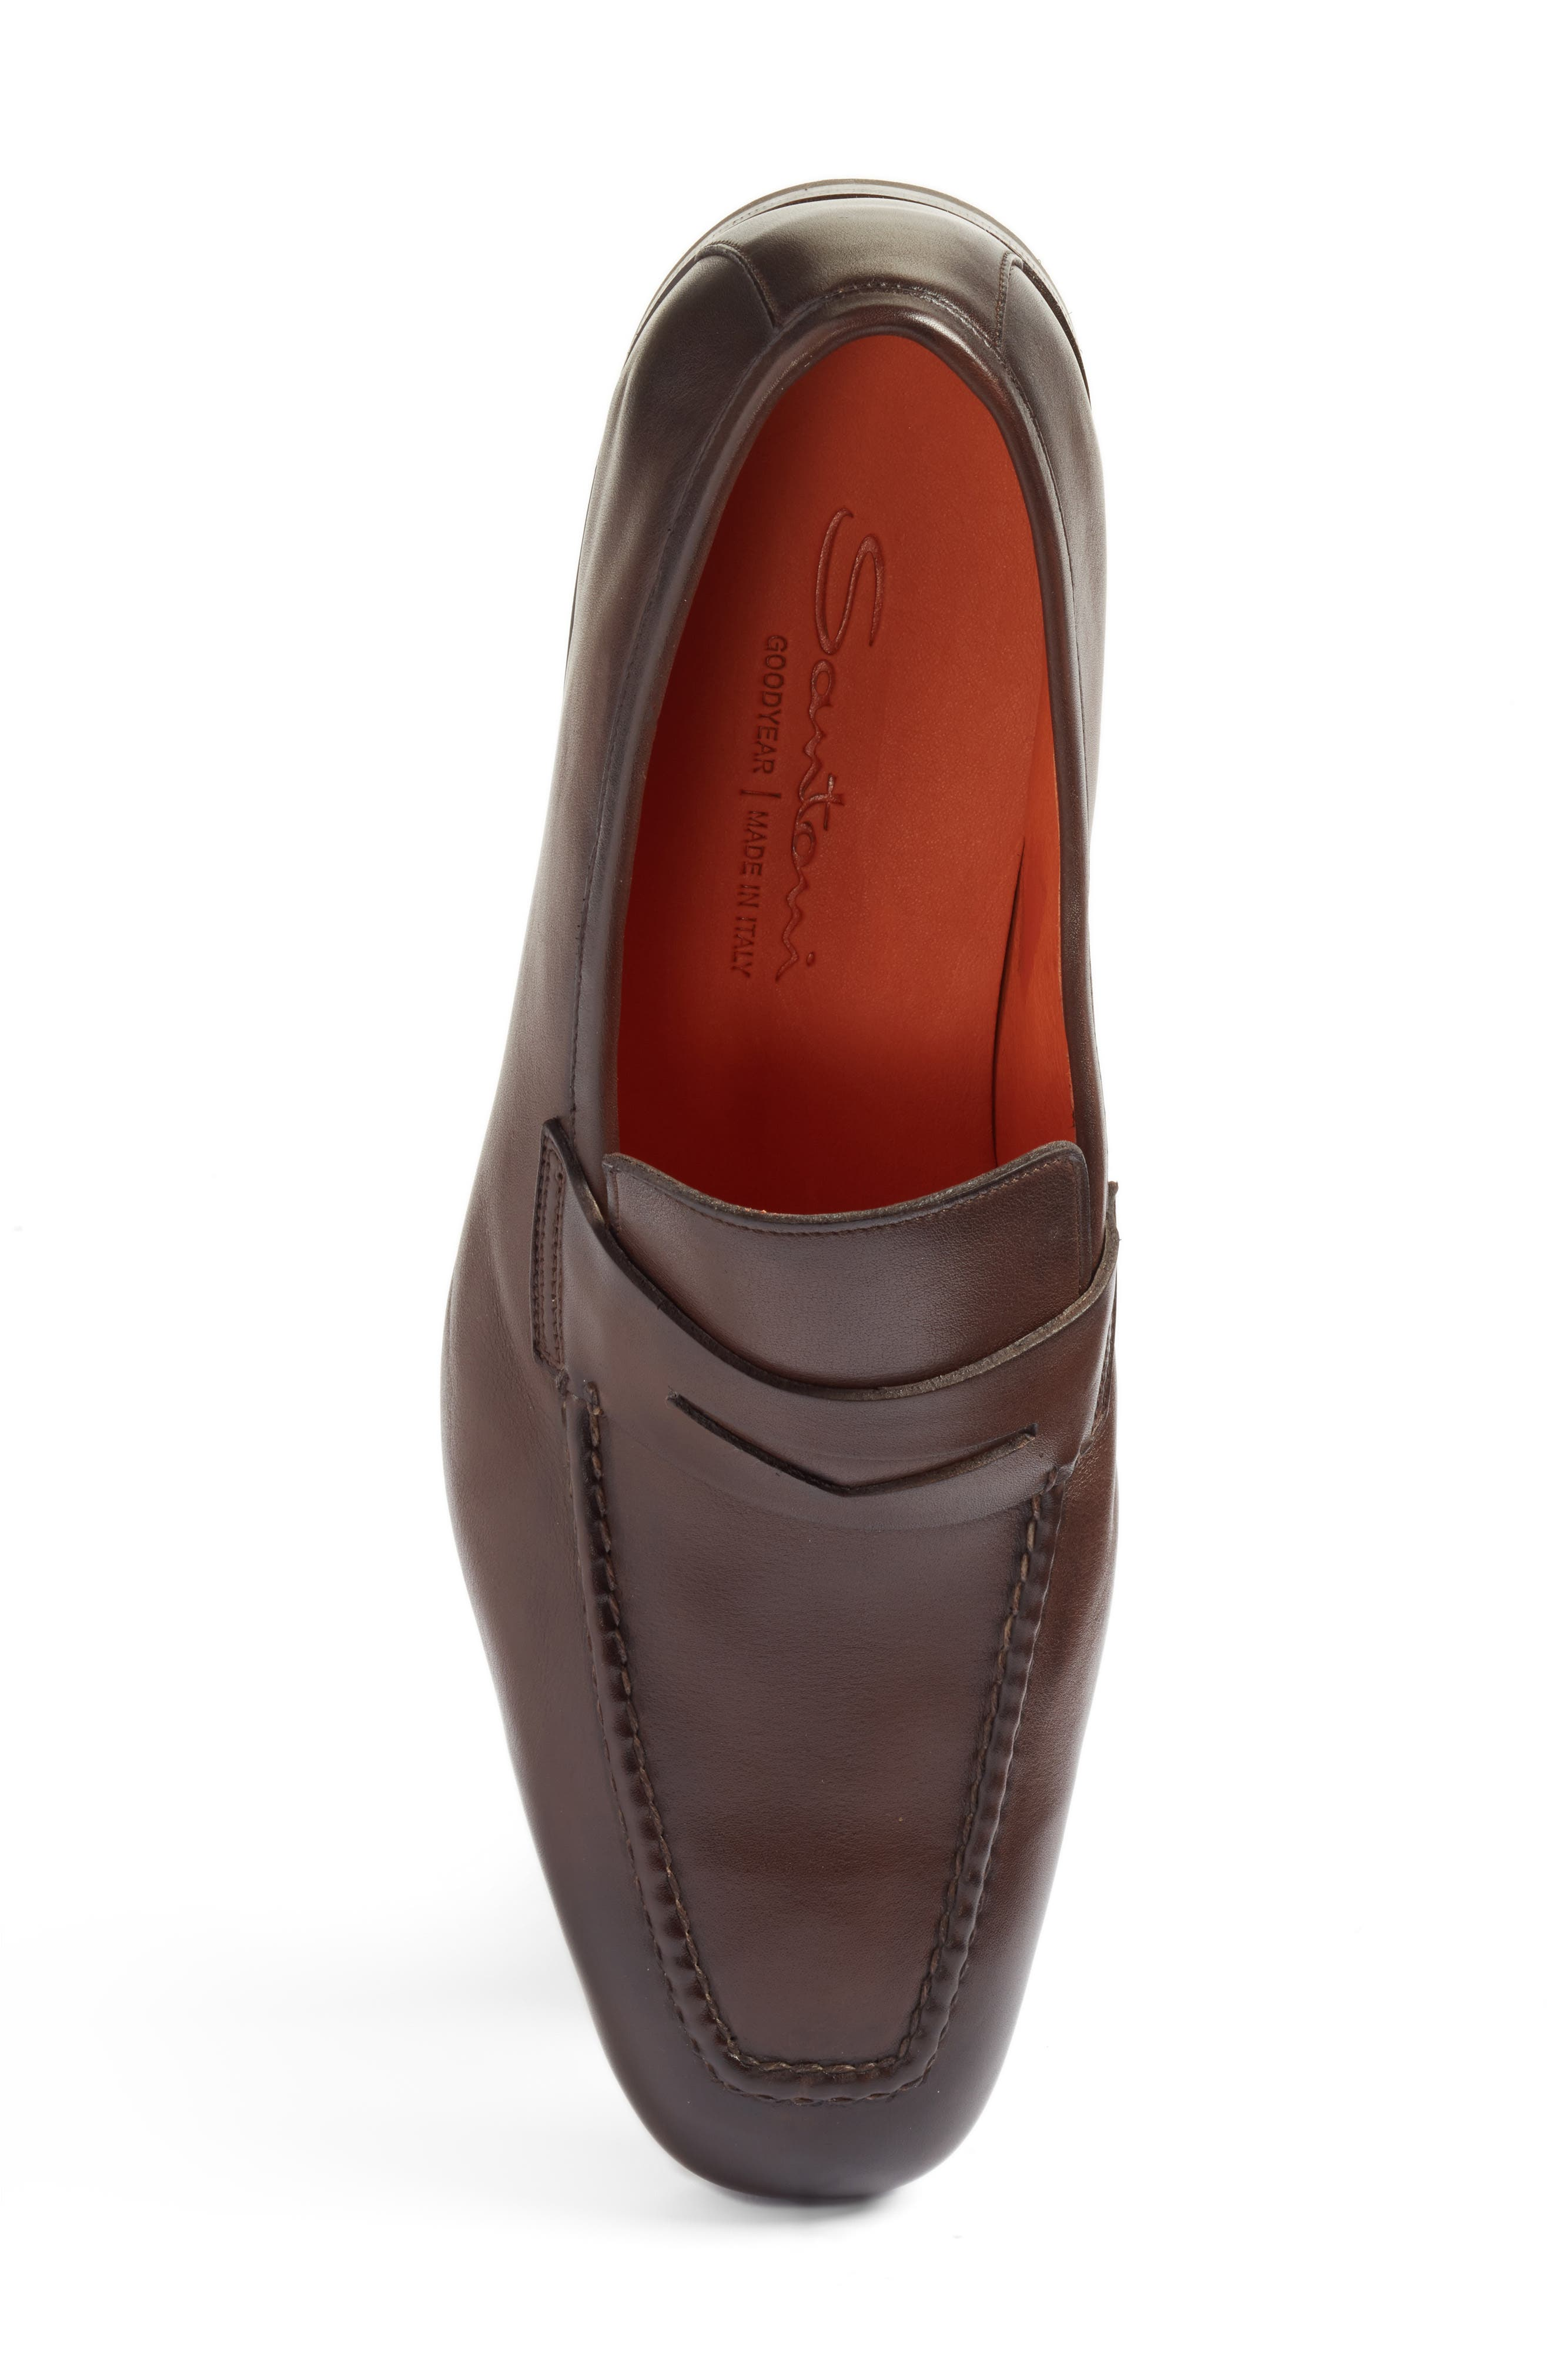 Fox Packable Penny Loafer,                             Alternate thumbnail 5, color,                             DARK BROWN LEATHER